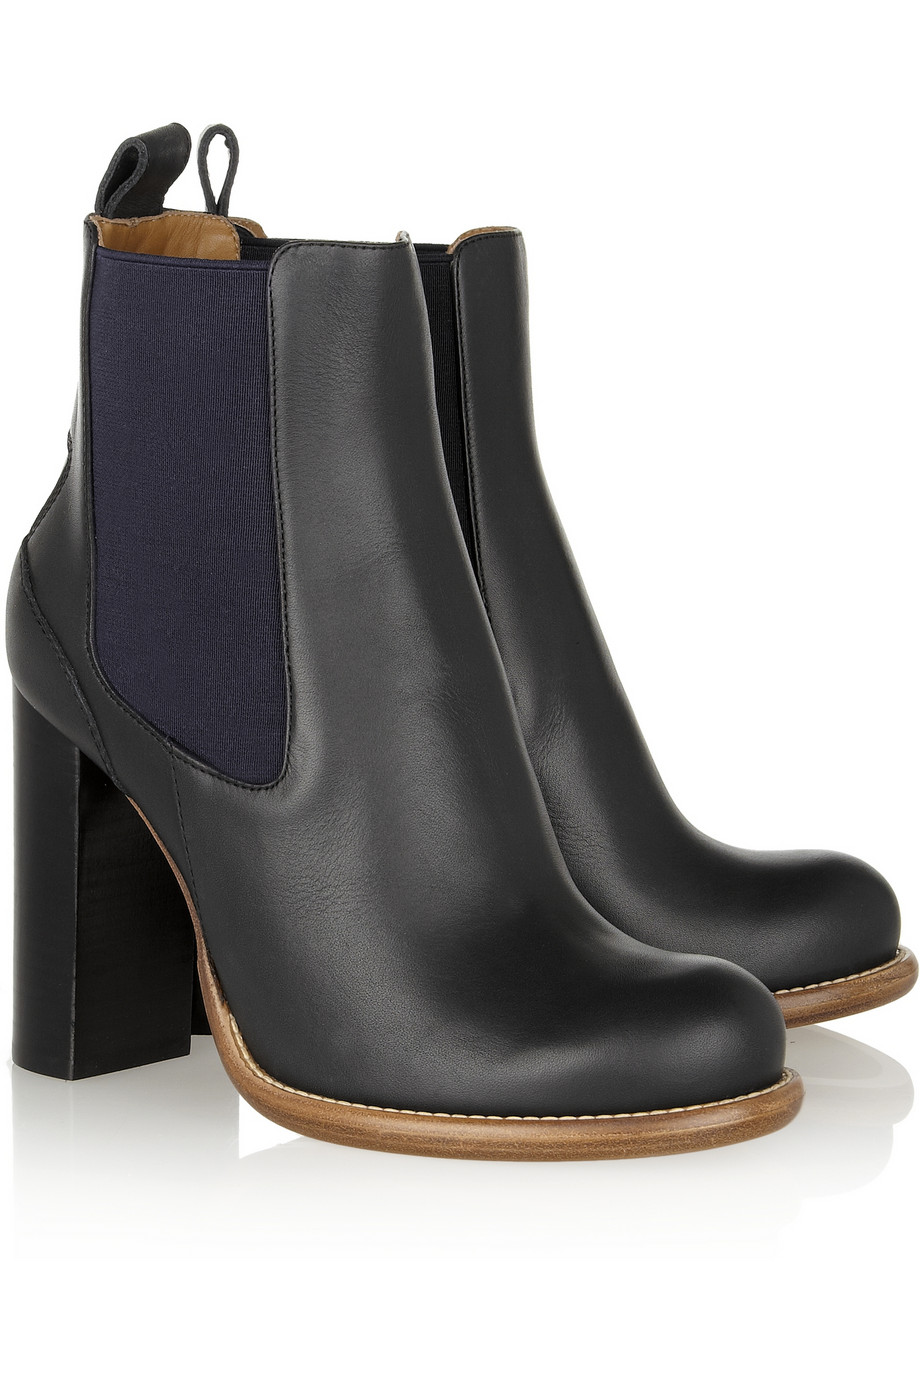 Chloé Leather Chelsea Boots in Blue | Lyst